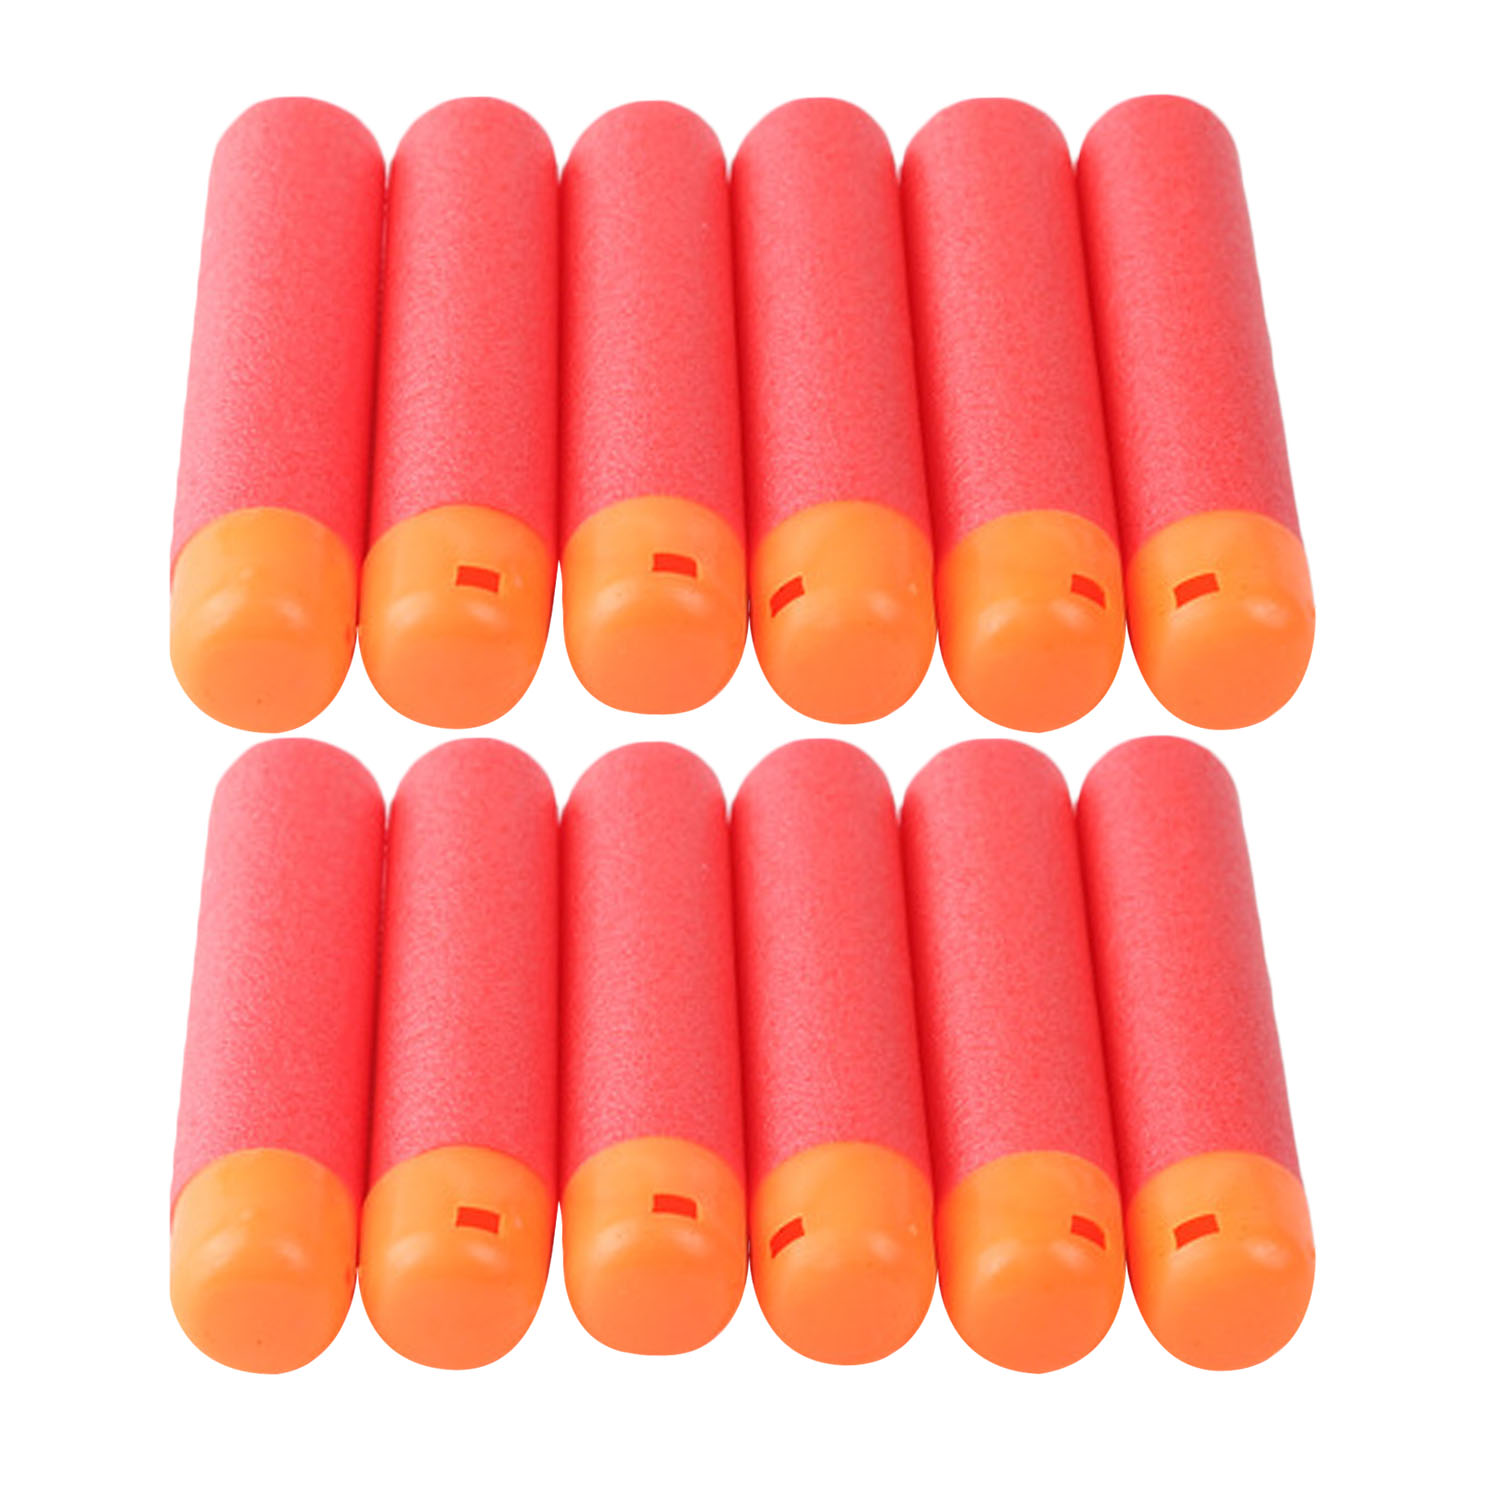 60PCS EVA Soft Foam Red Sniper Gun Bullets Toy Refill Darts Hollow Hole Head 9.5x2cm Air Core Design for Nerf Series Blasters